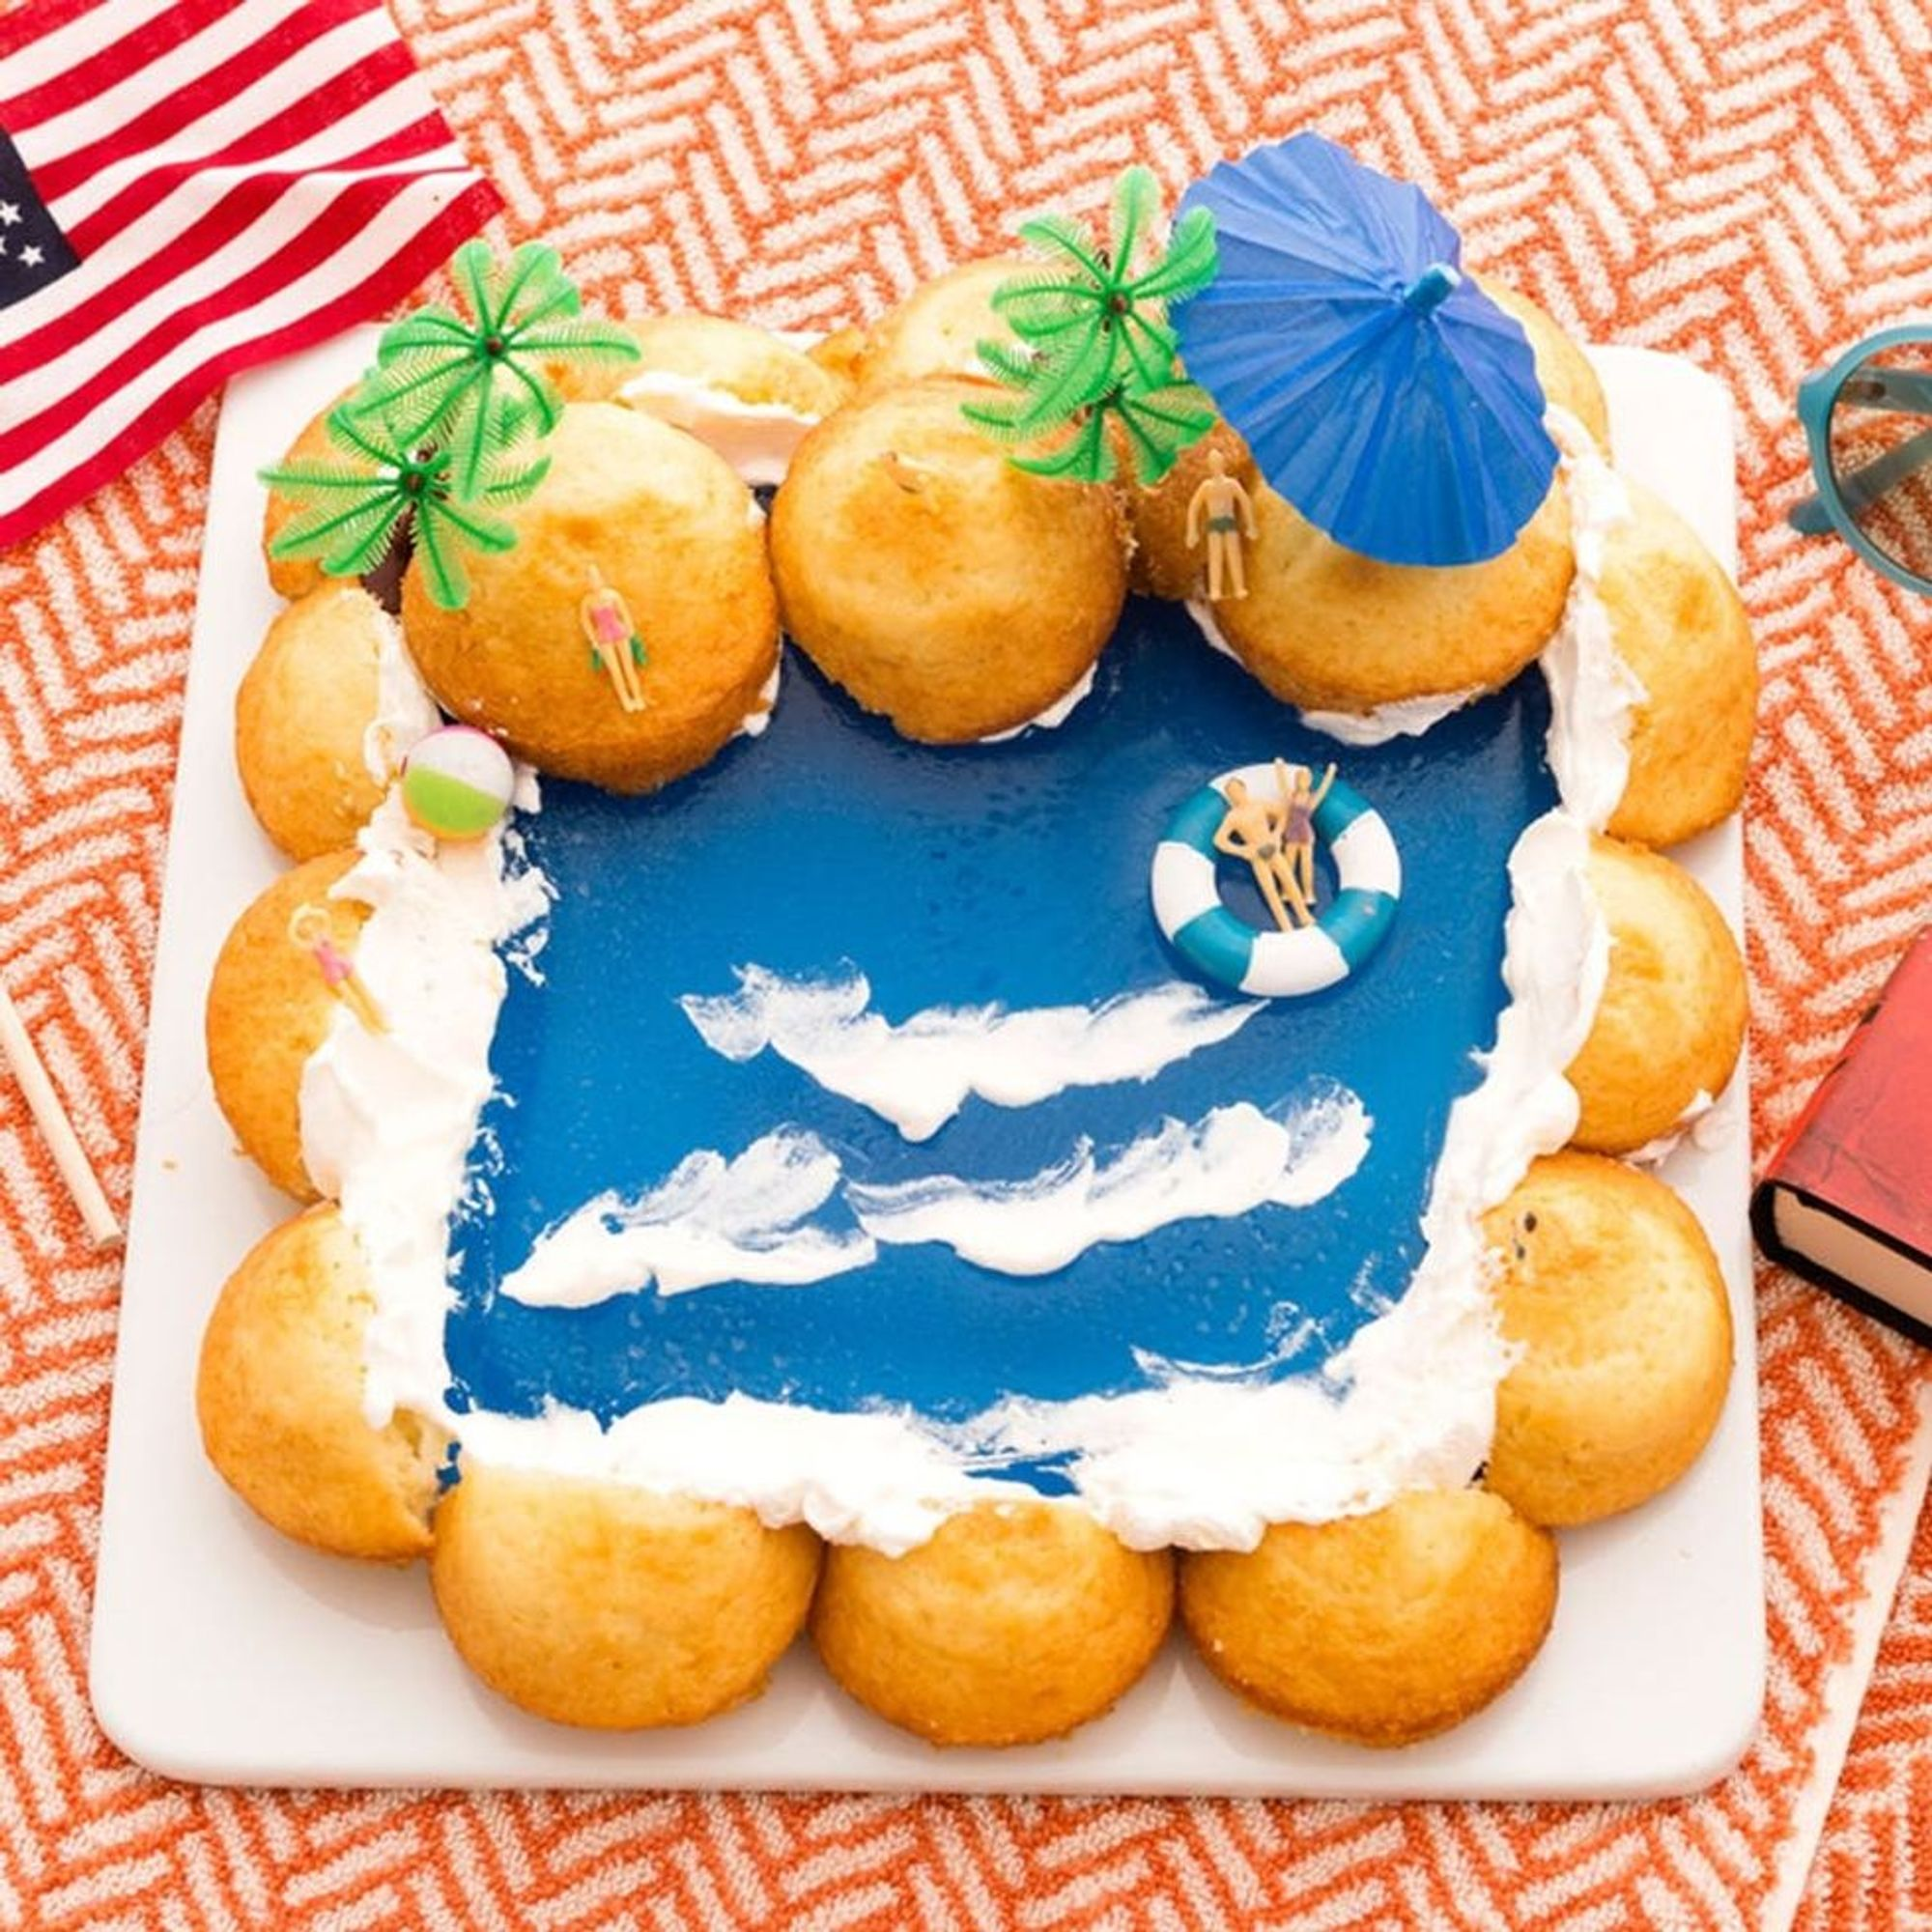 Make a Splash at Your Next Party With This DIY Pool Cake